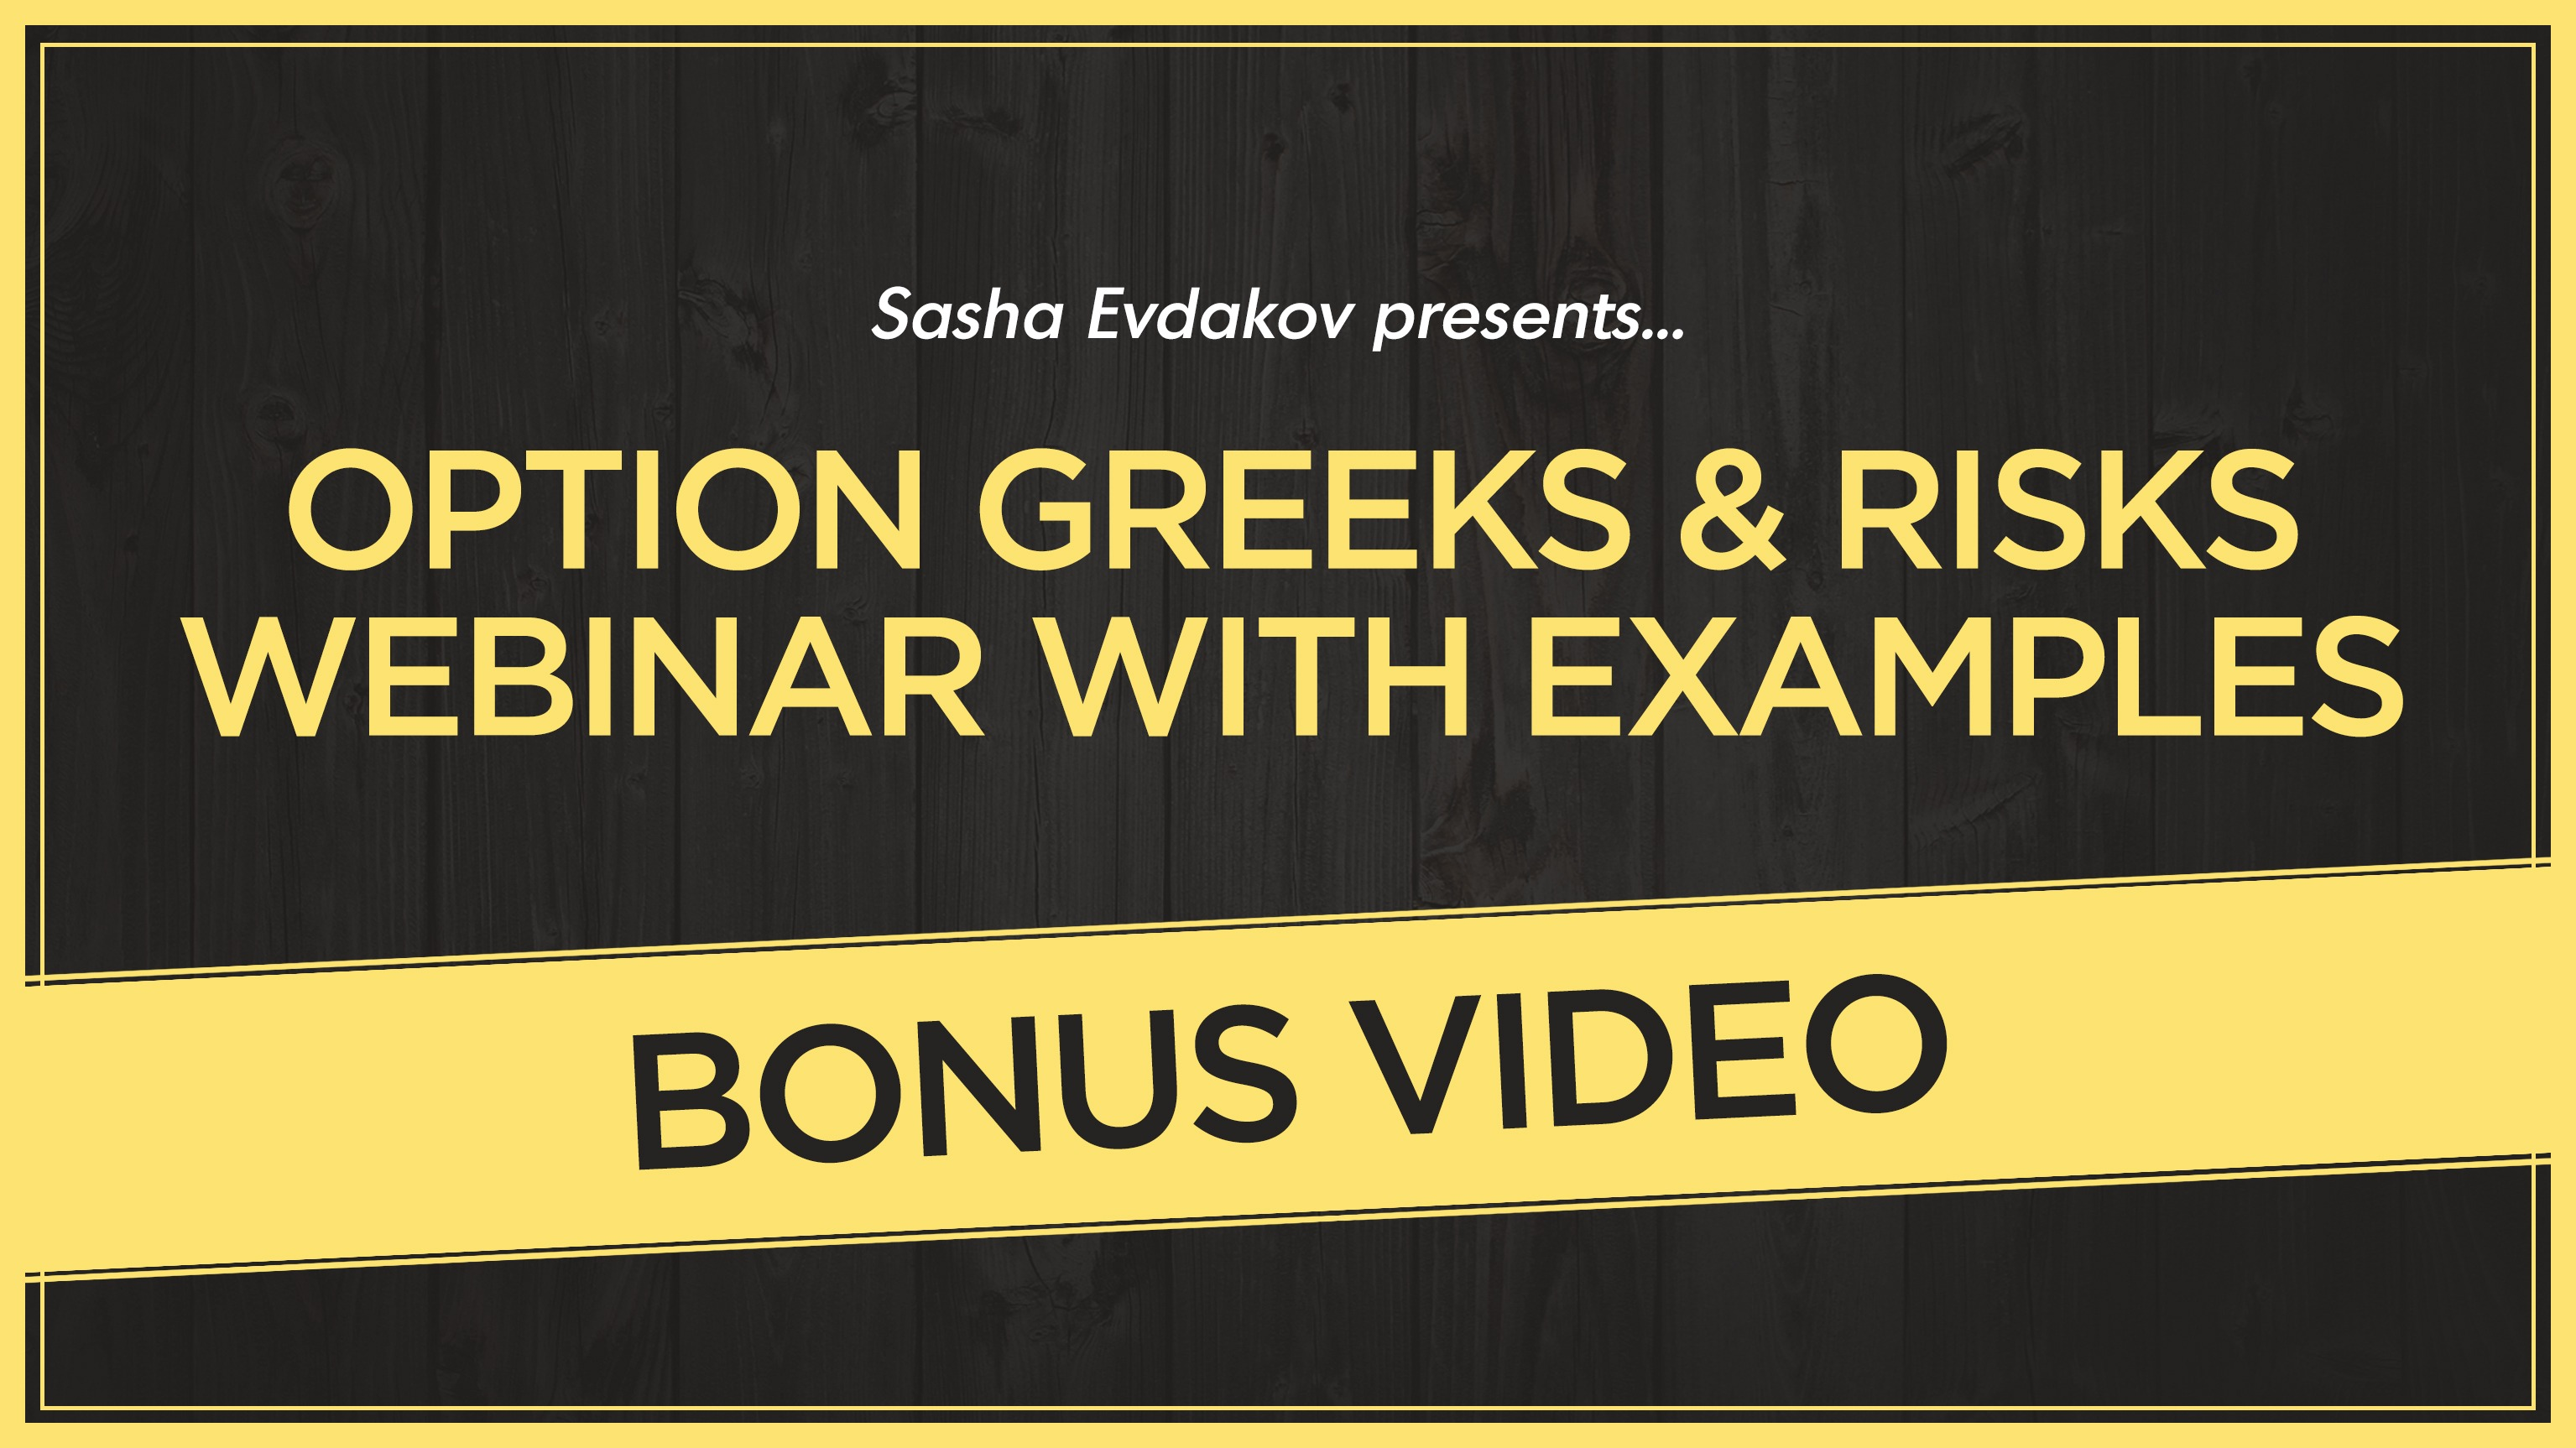 Option Greeks & Risks Webinar with Examples Bonus Video Thumbnail